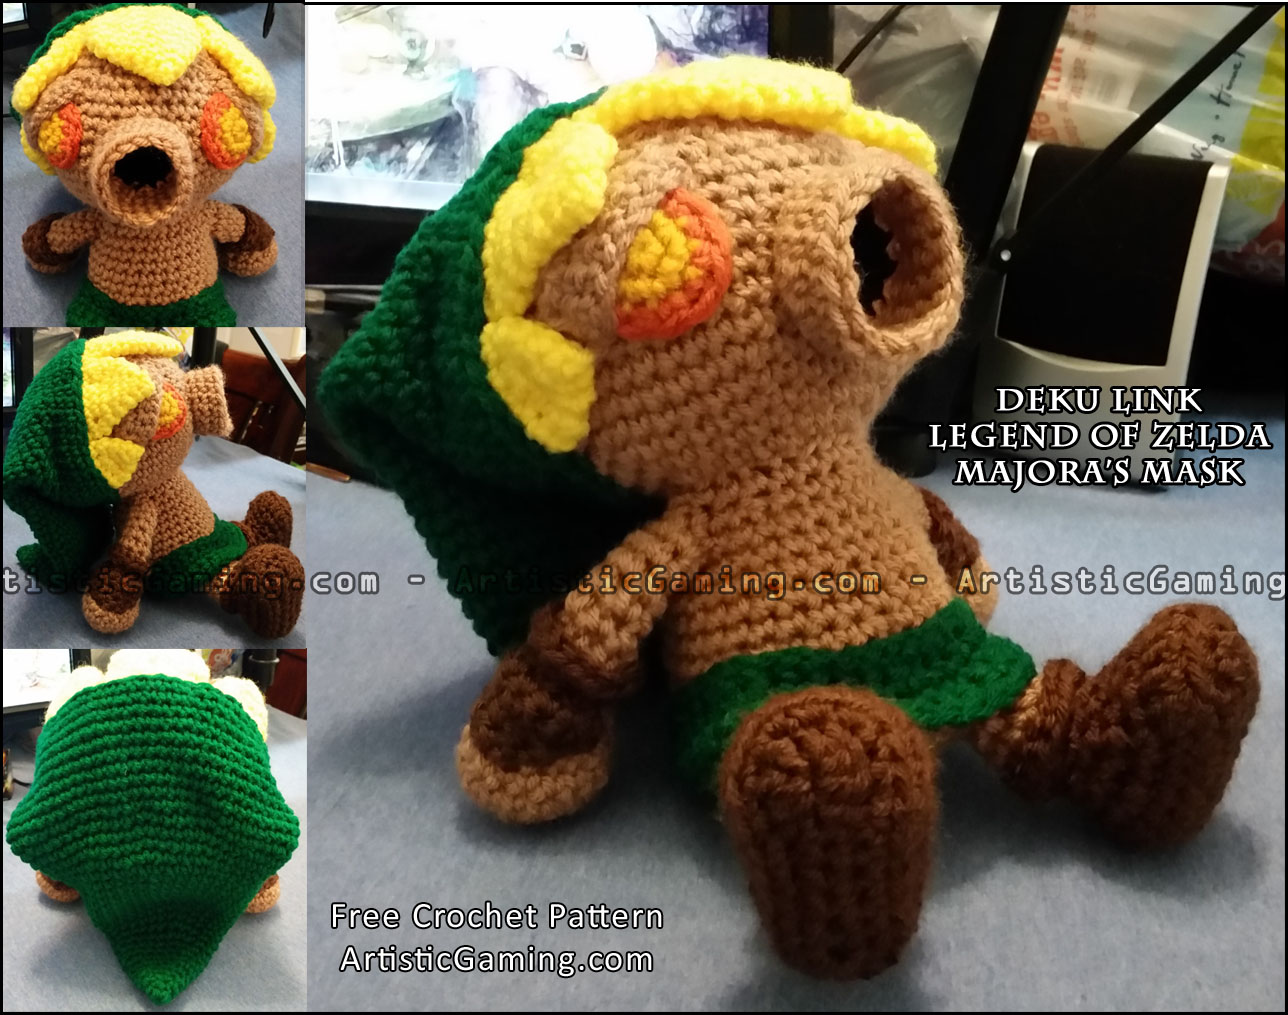 Legend of Zelda Deku Link Free Crochet Pattern ? ArtisticGaming